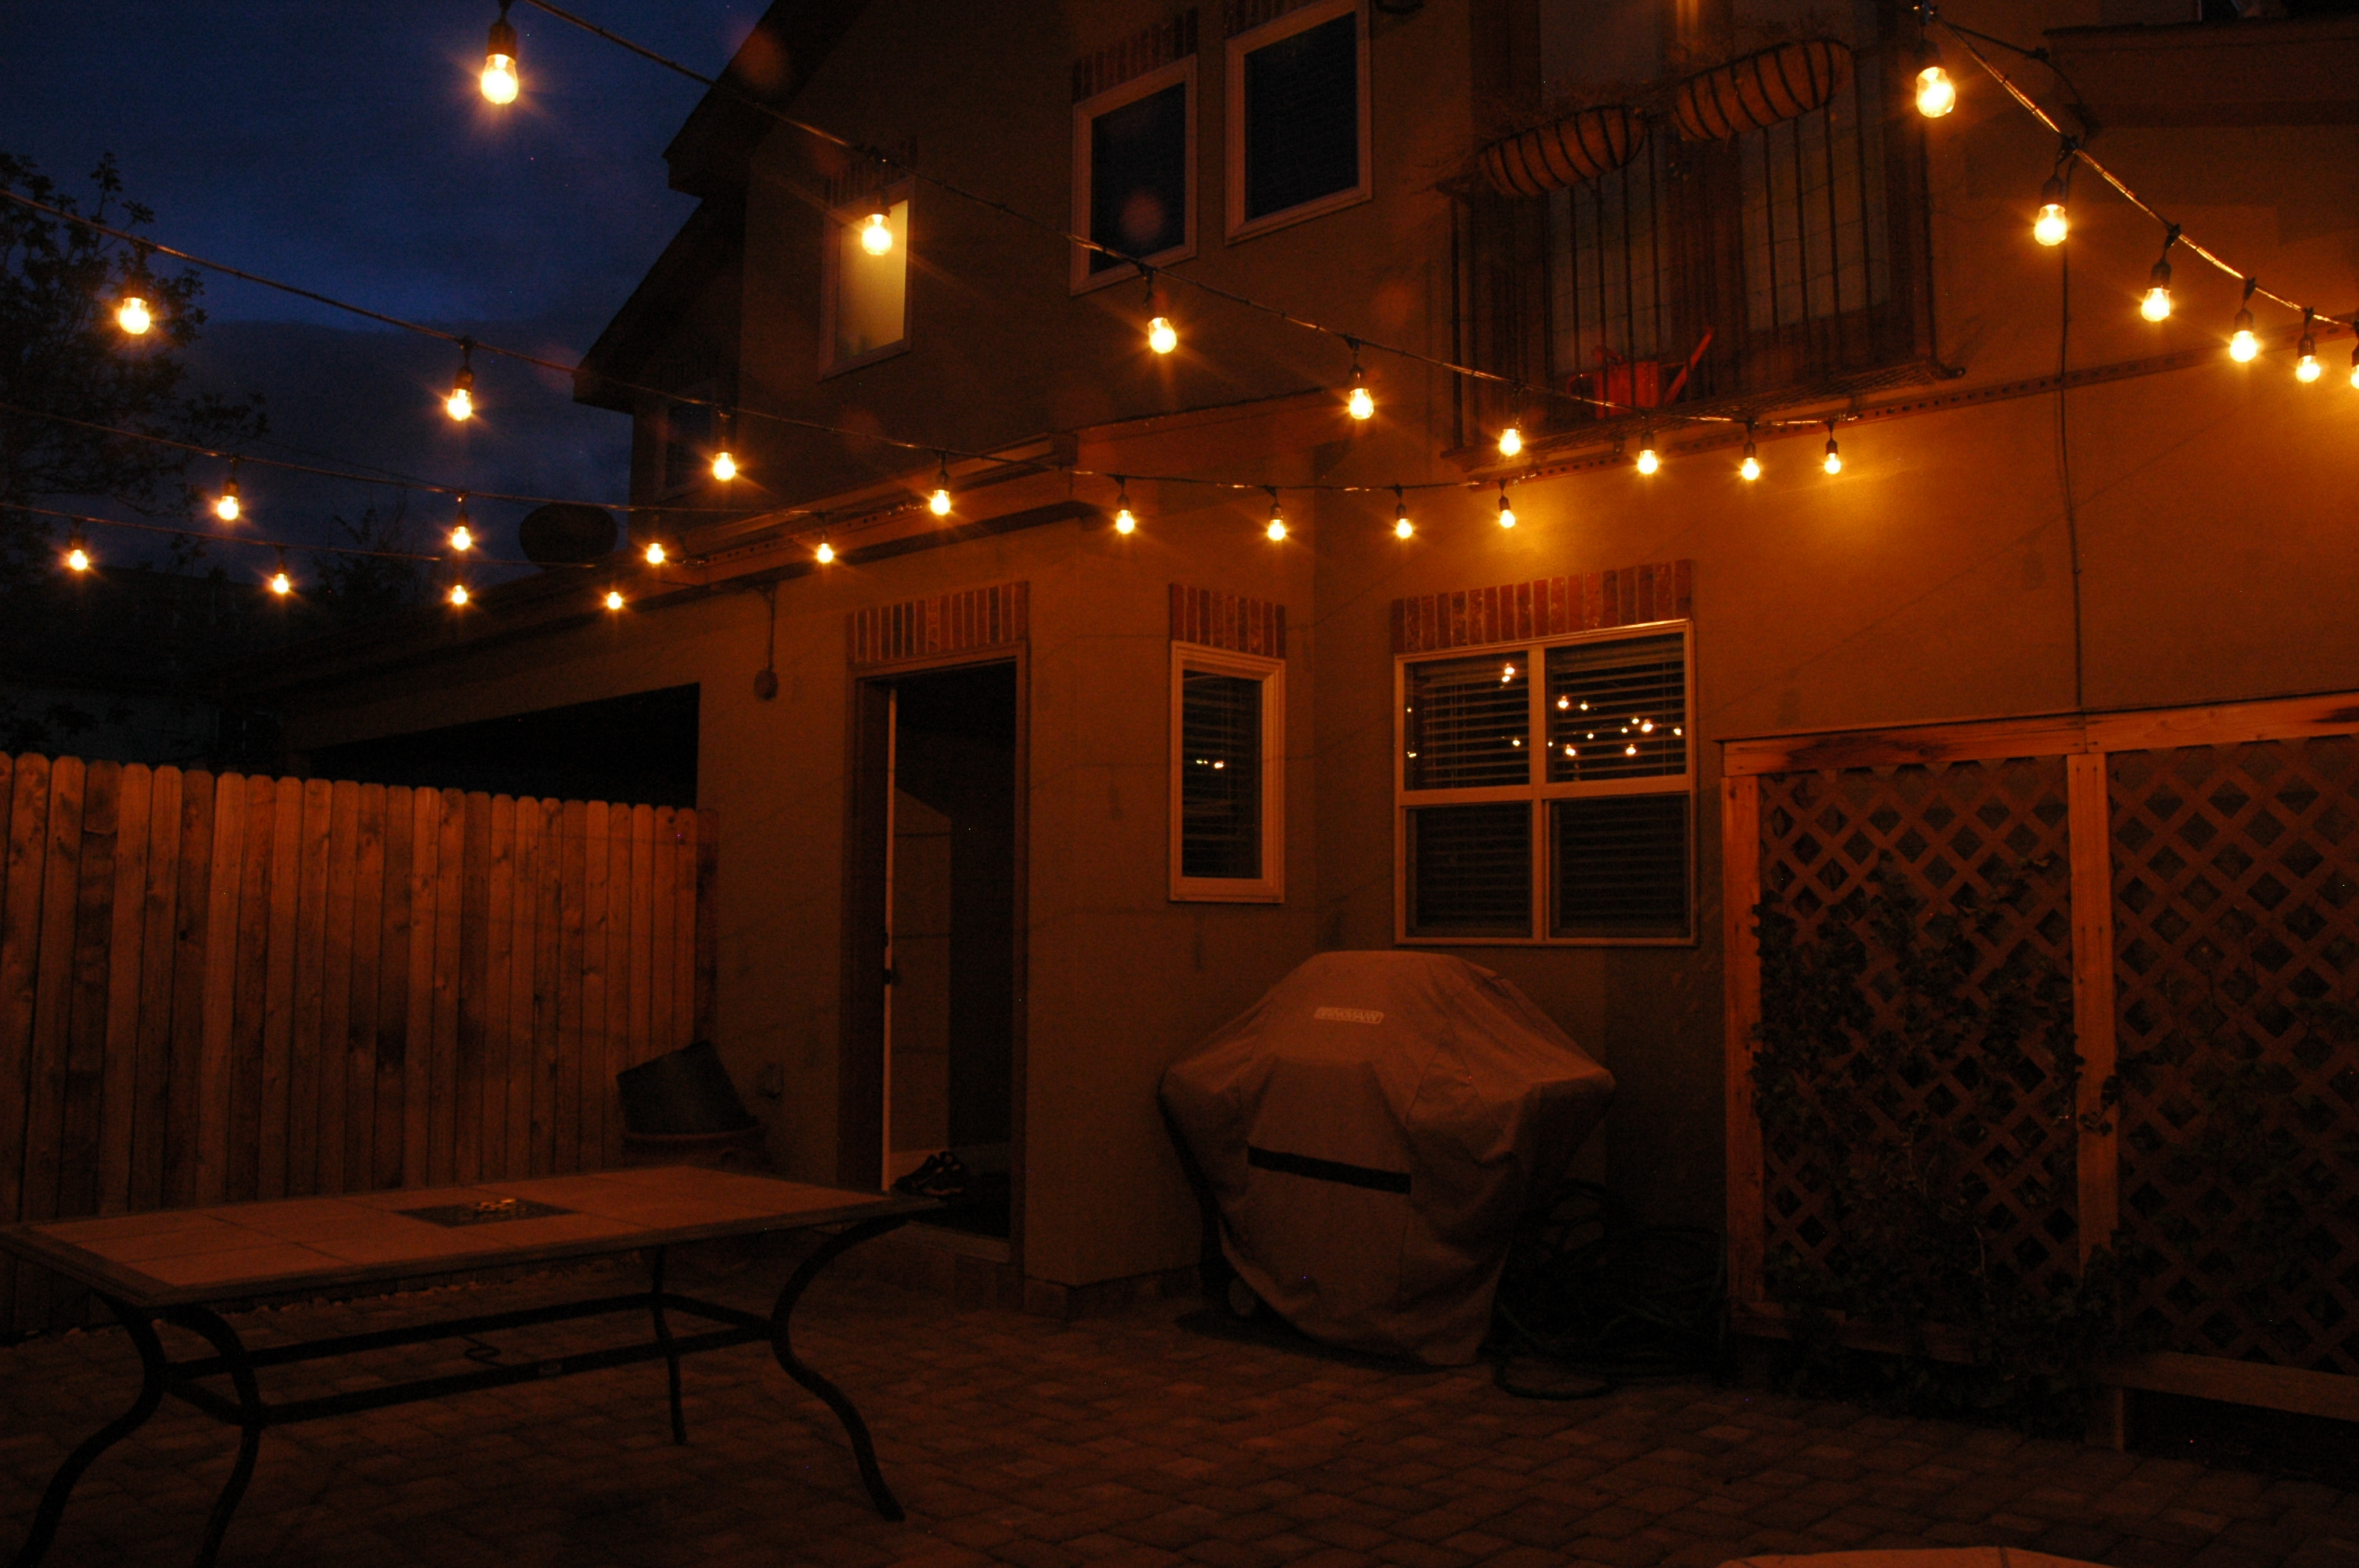 24 perfect outdoor string lights that last Outdoor string lighting